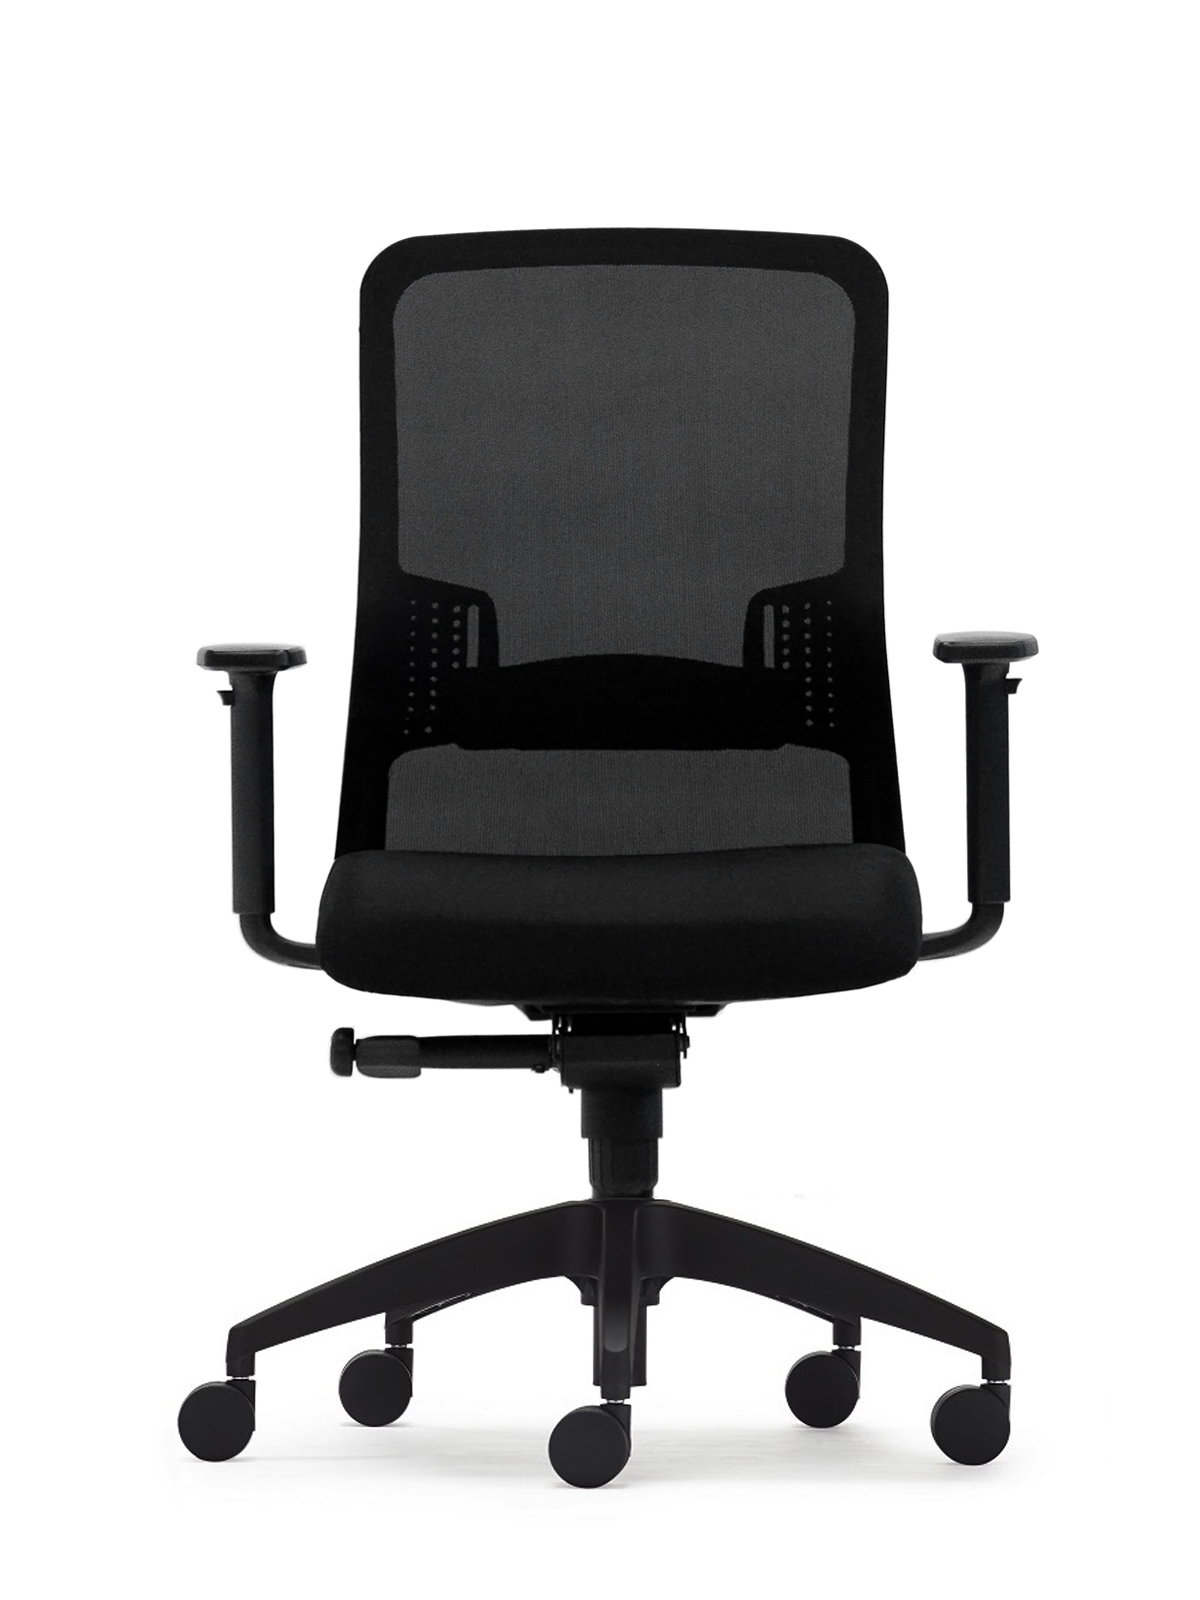 ergonomic chair australia reclining camping buy a graphite office chairs delivery